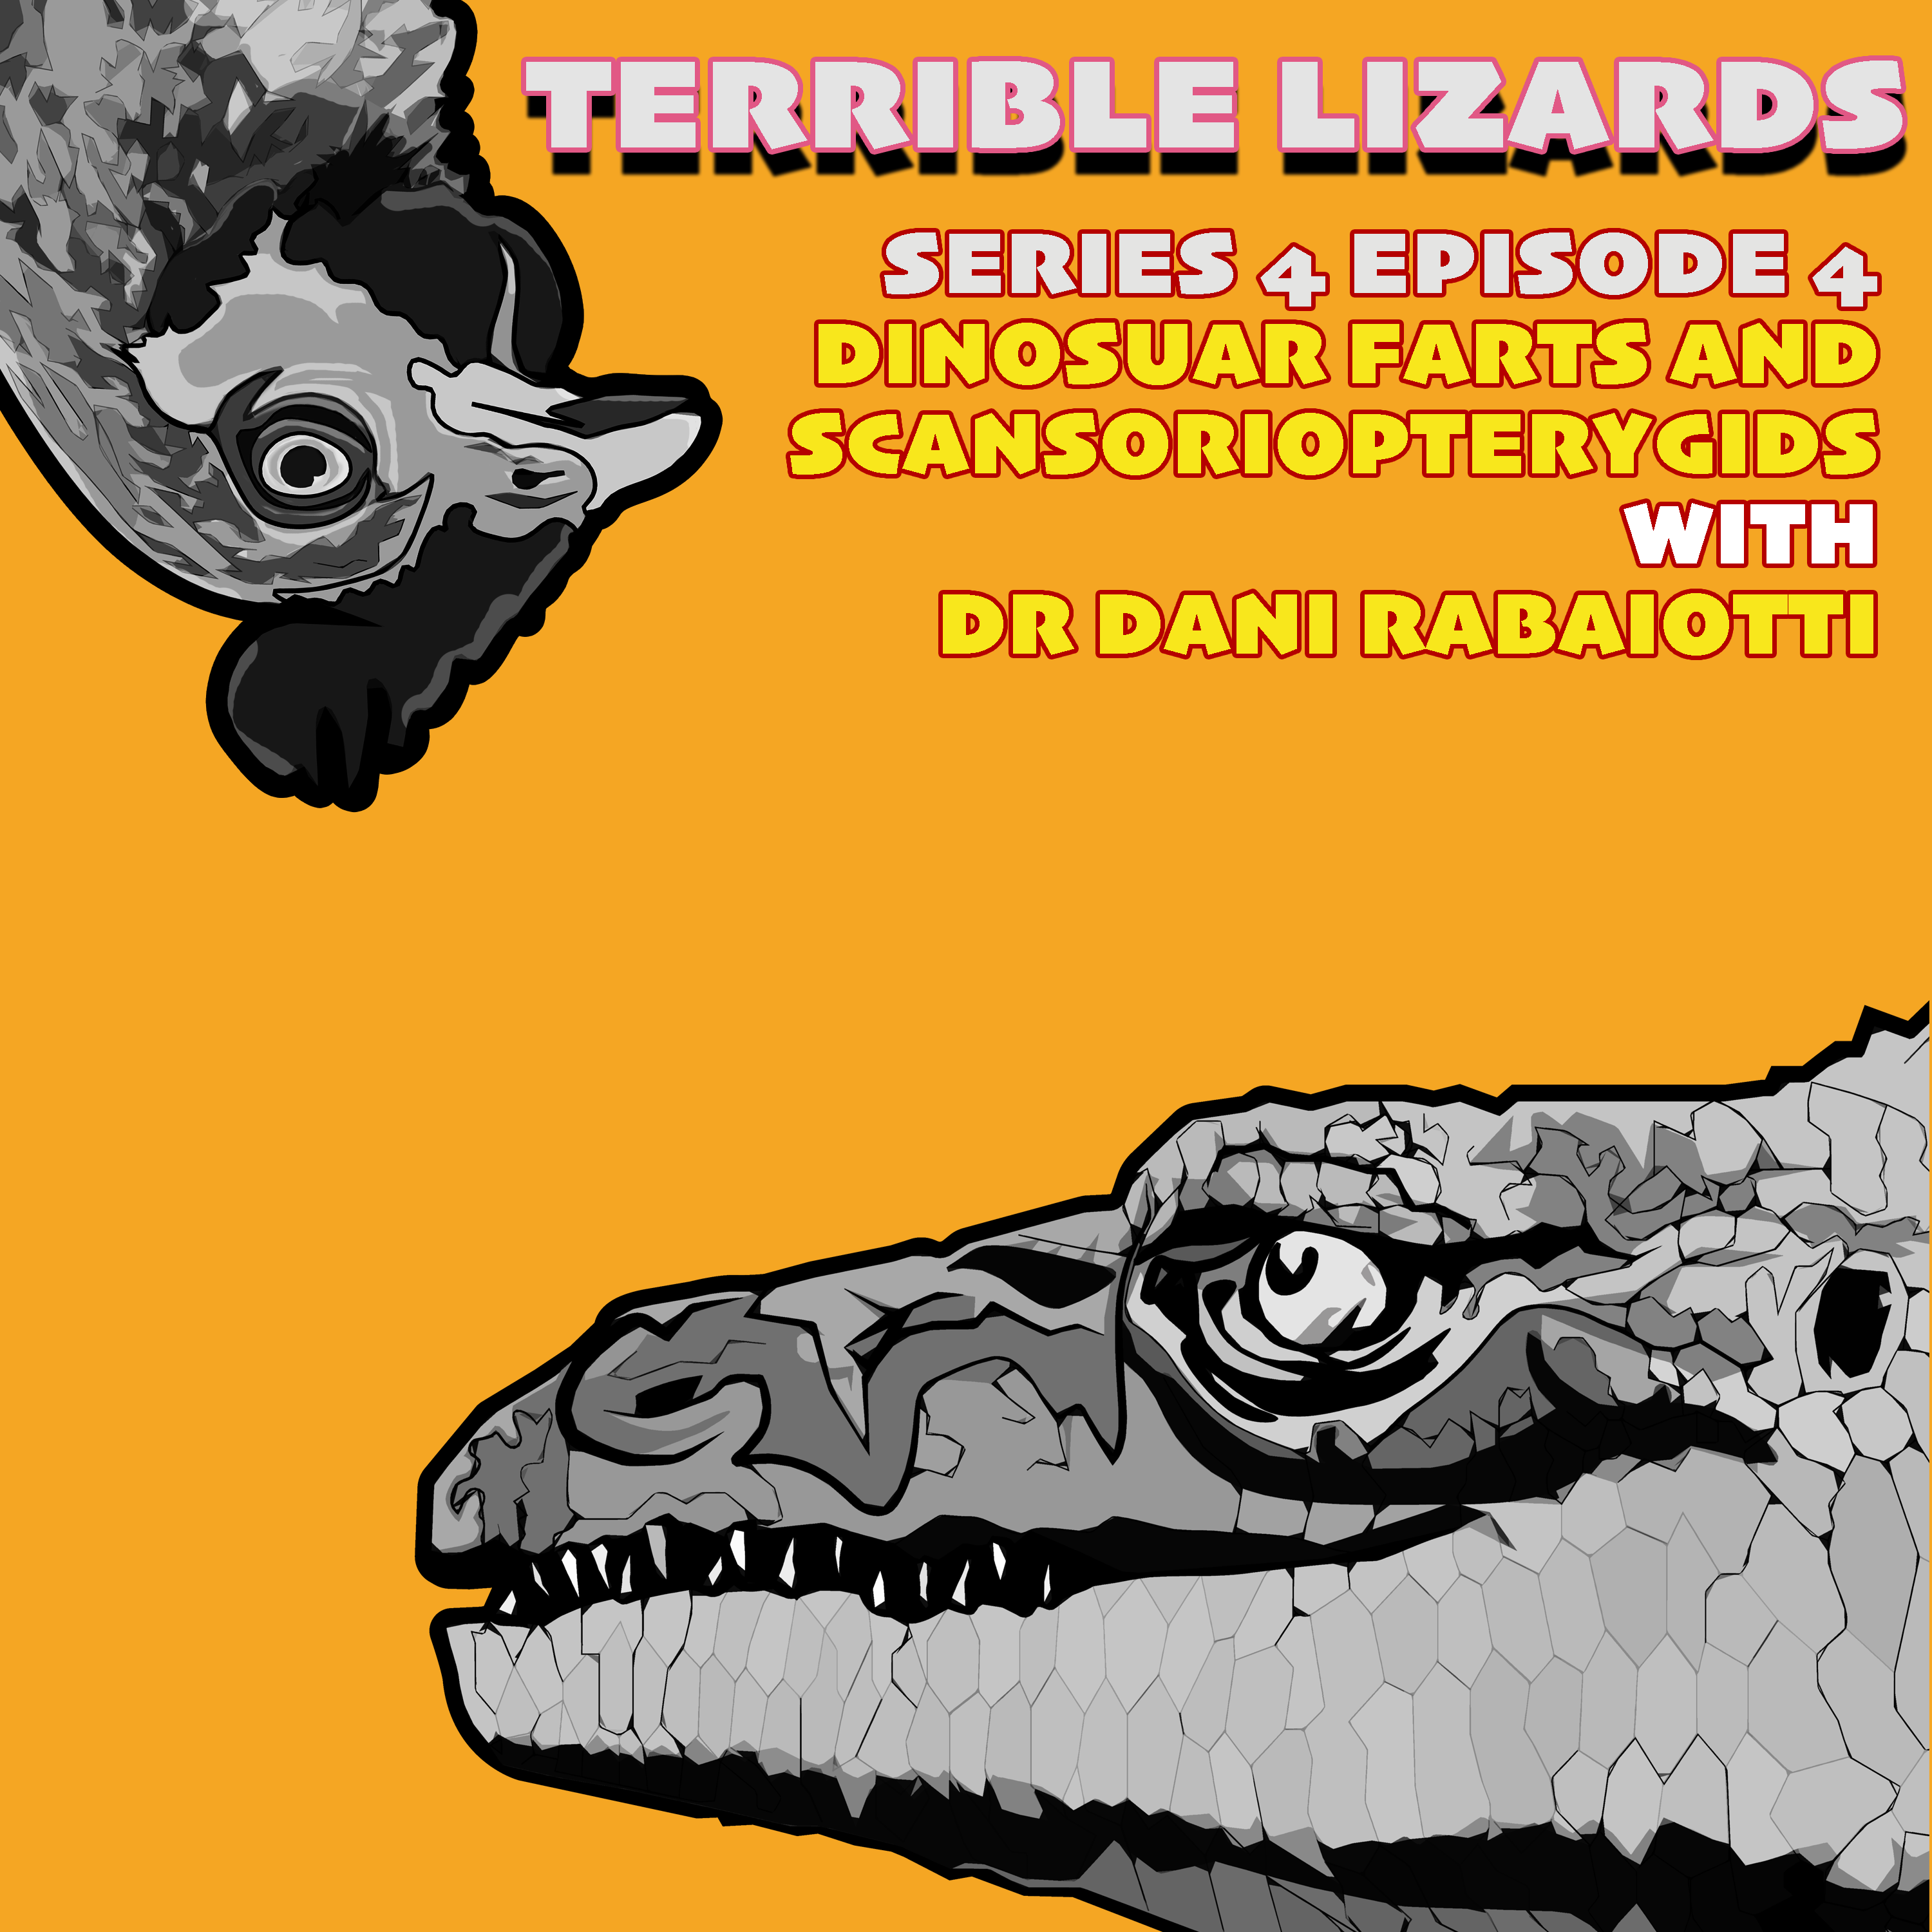 S04E04 Dinosaur Farts (and Scansoriopterygids)